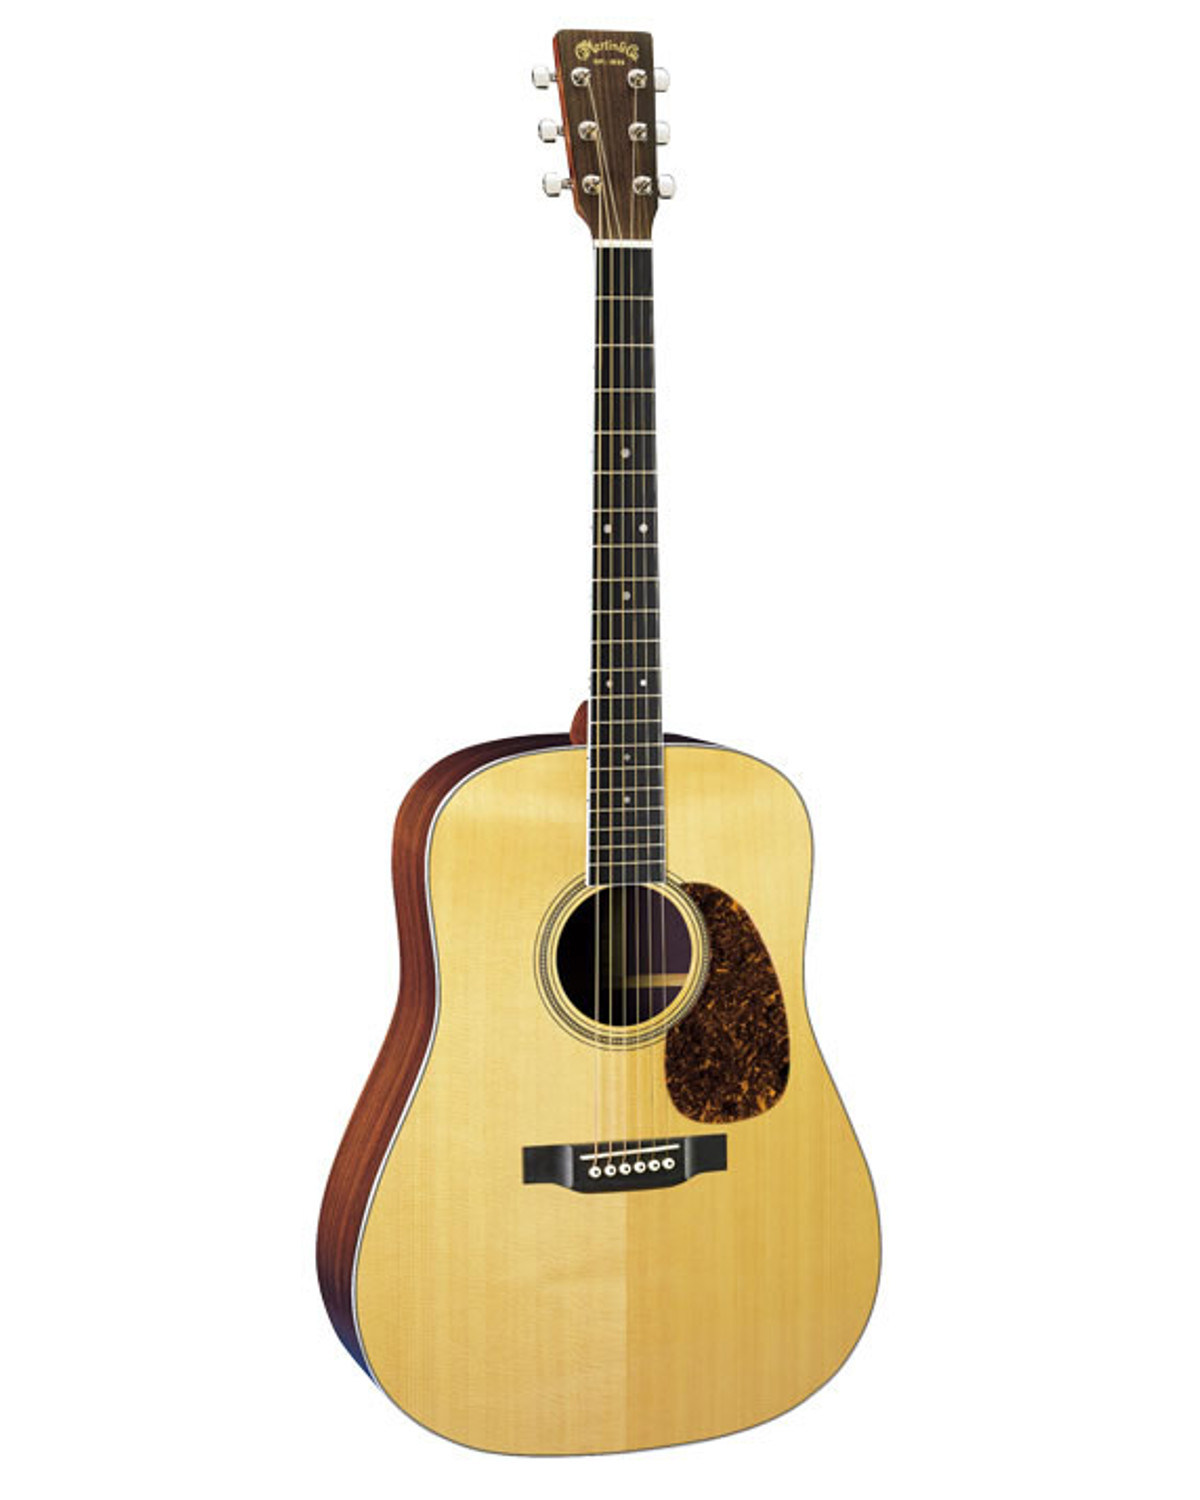 Martin D16RGT Dreadnought Acoustic Guitar